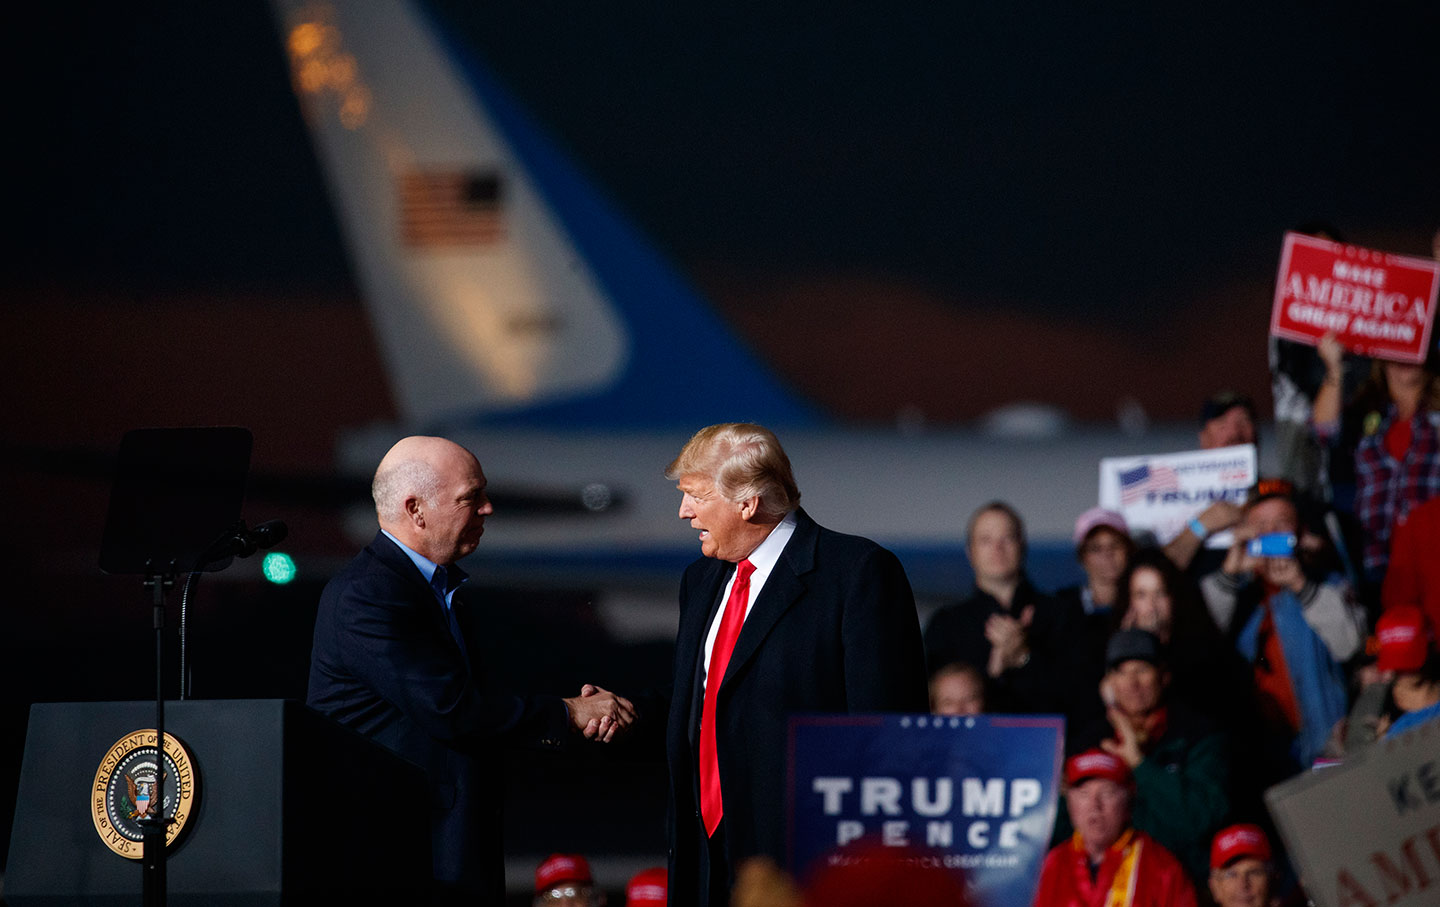 Trump and Gianforte handshake